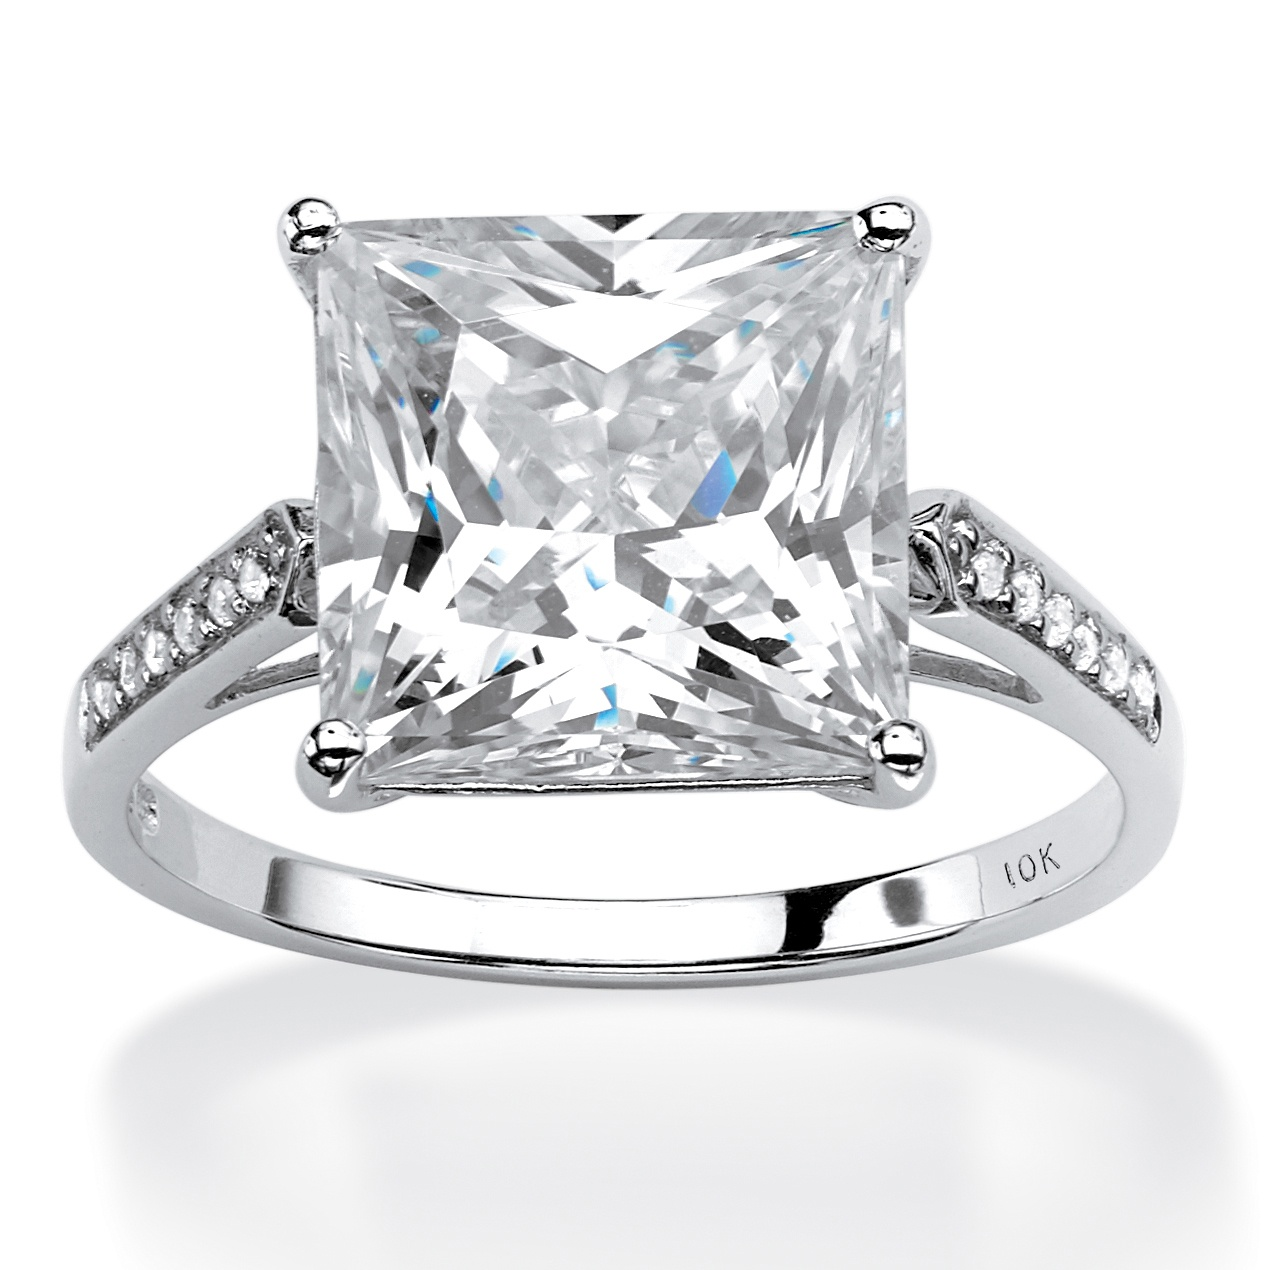 PalmBeach Princess-Cut Cubic Zirconia Engagement Ring 3.3...